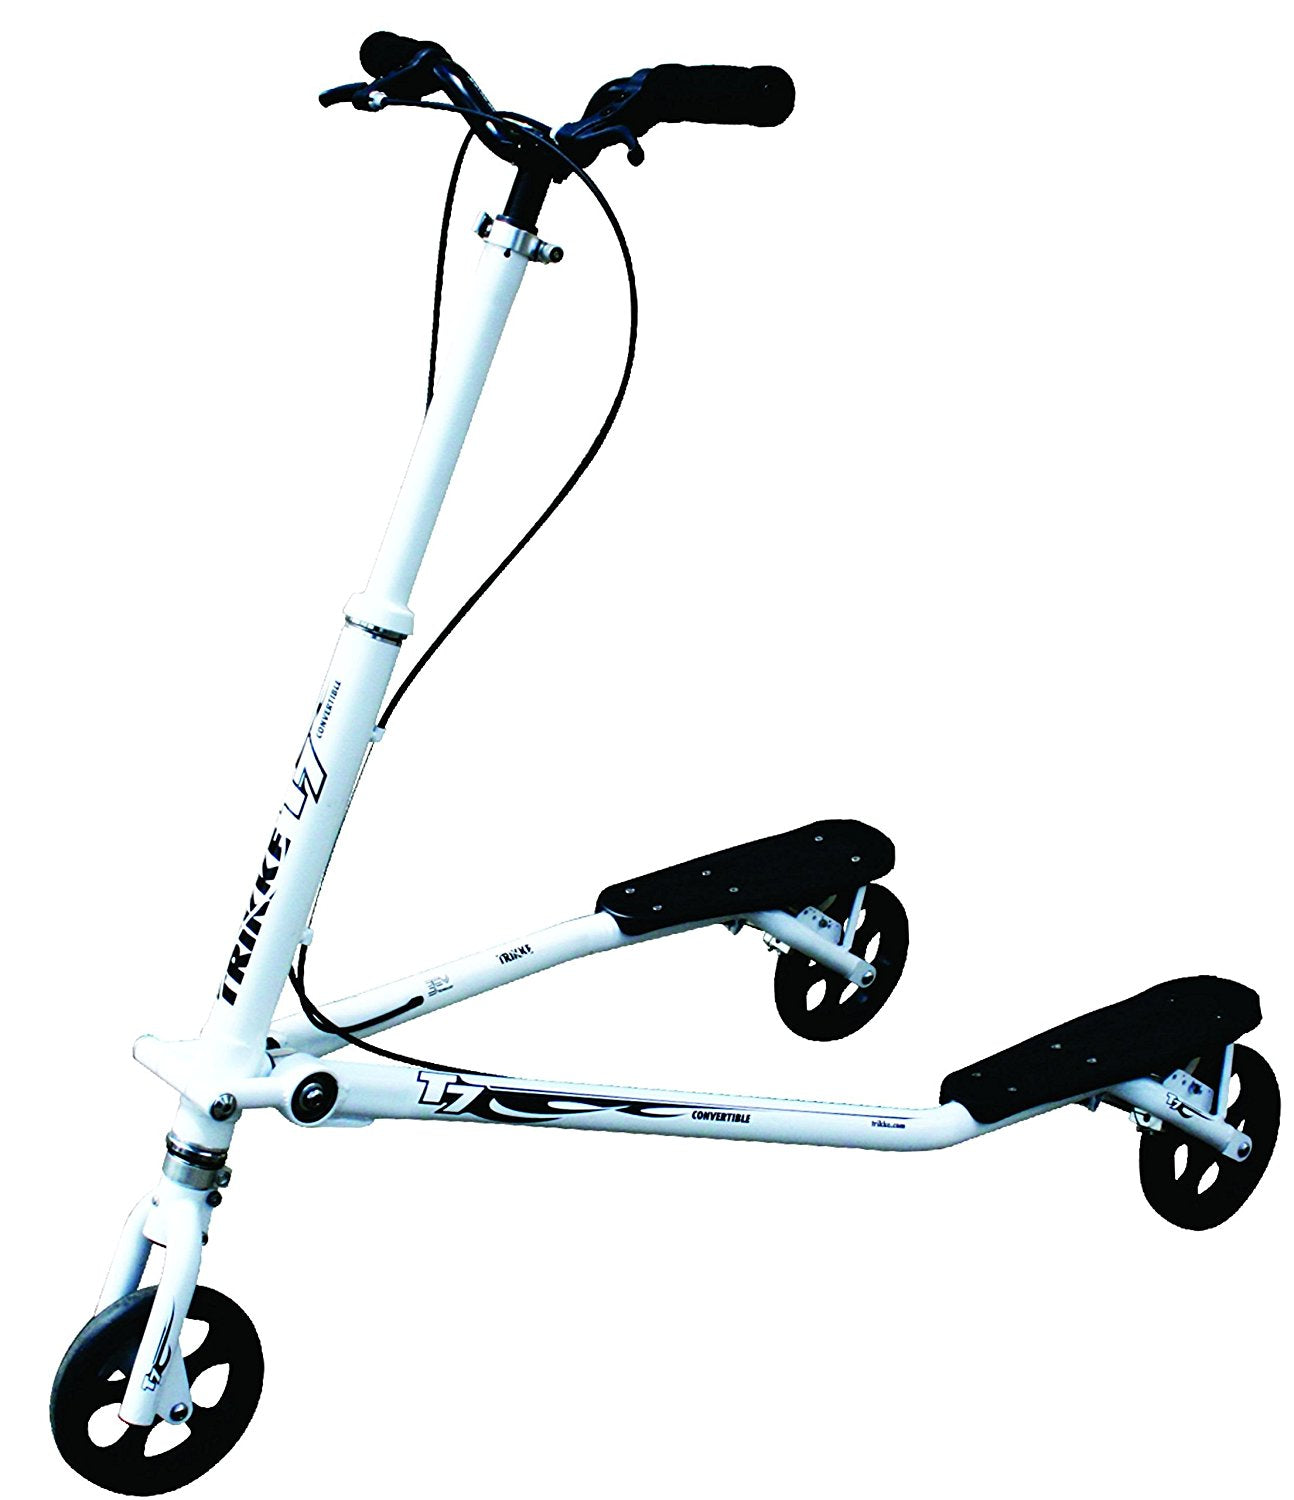 Trikke Tech T7f Convertible Carving Vehicle - T7f-wtbk